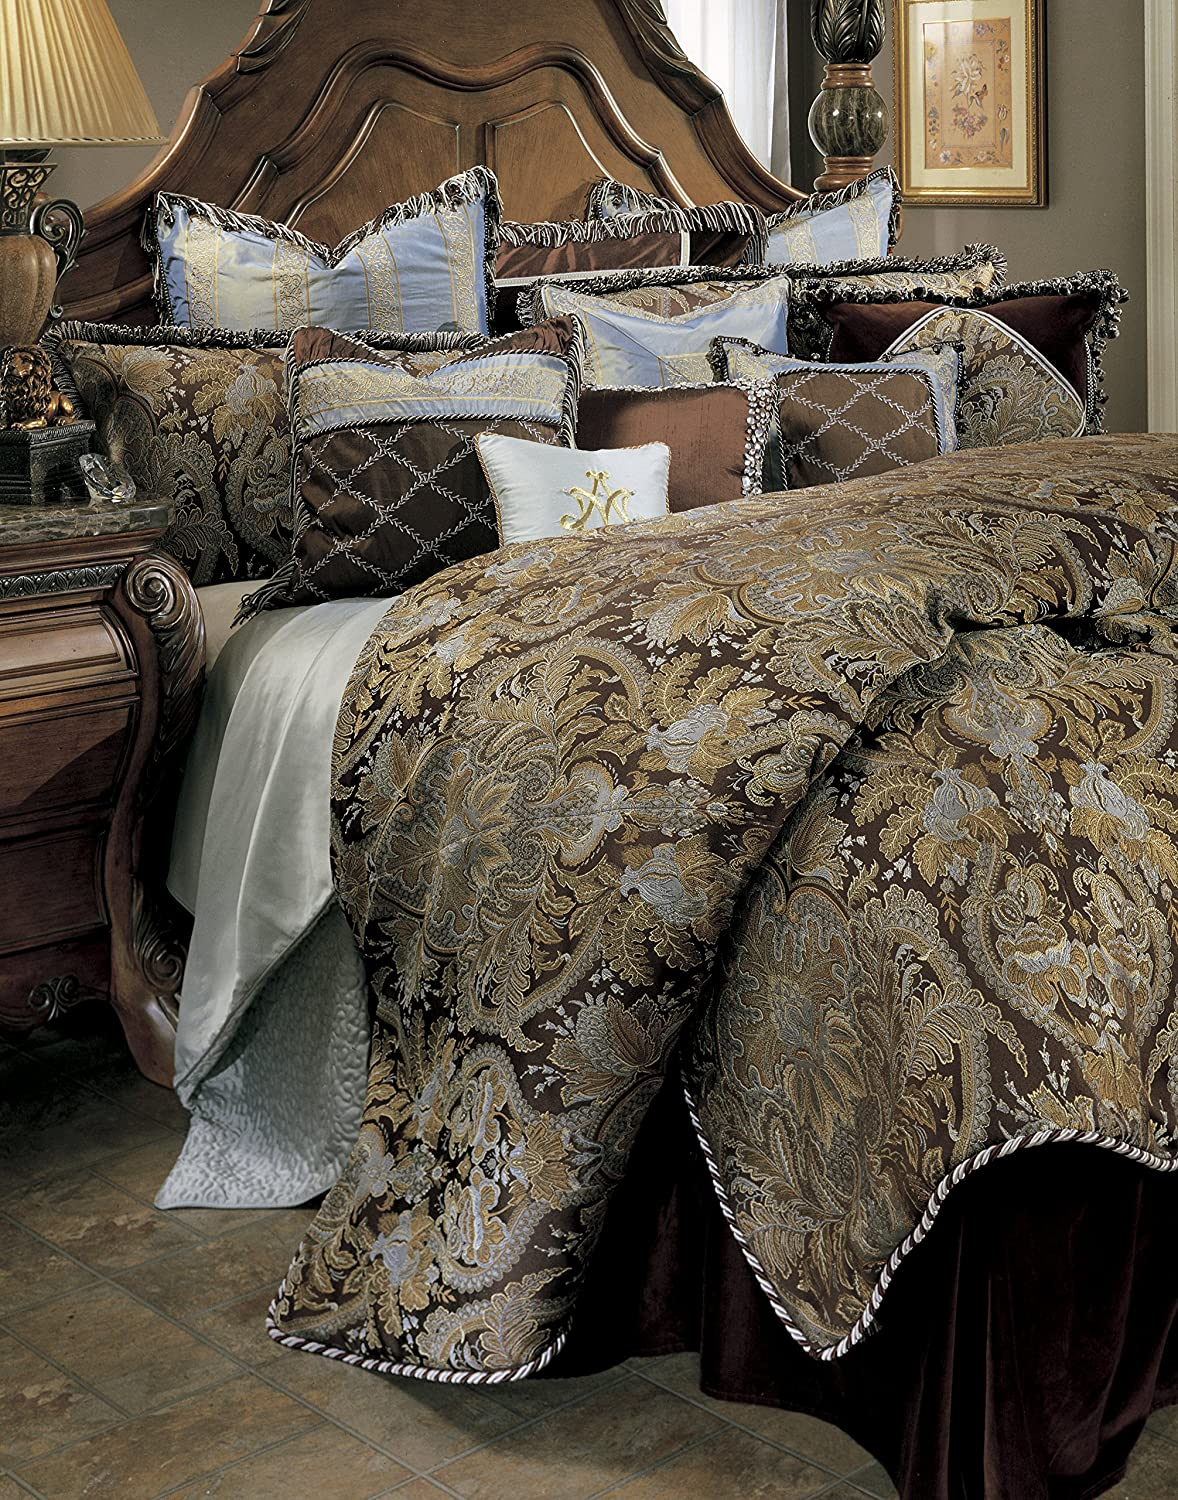 amazoncom michael amini portofino  piece comforter king brown home kitchen. amazoncom michael amini portofino  piece comforter king